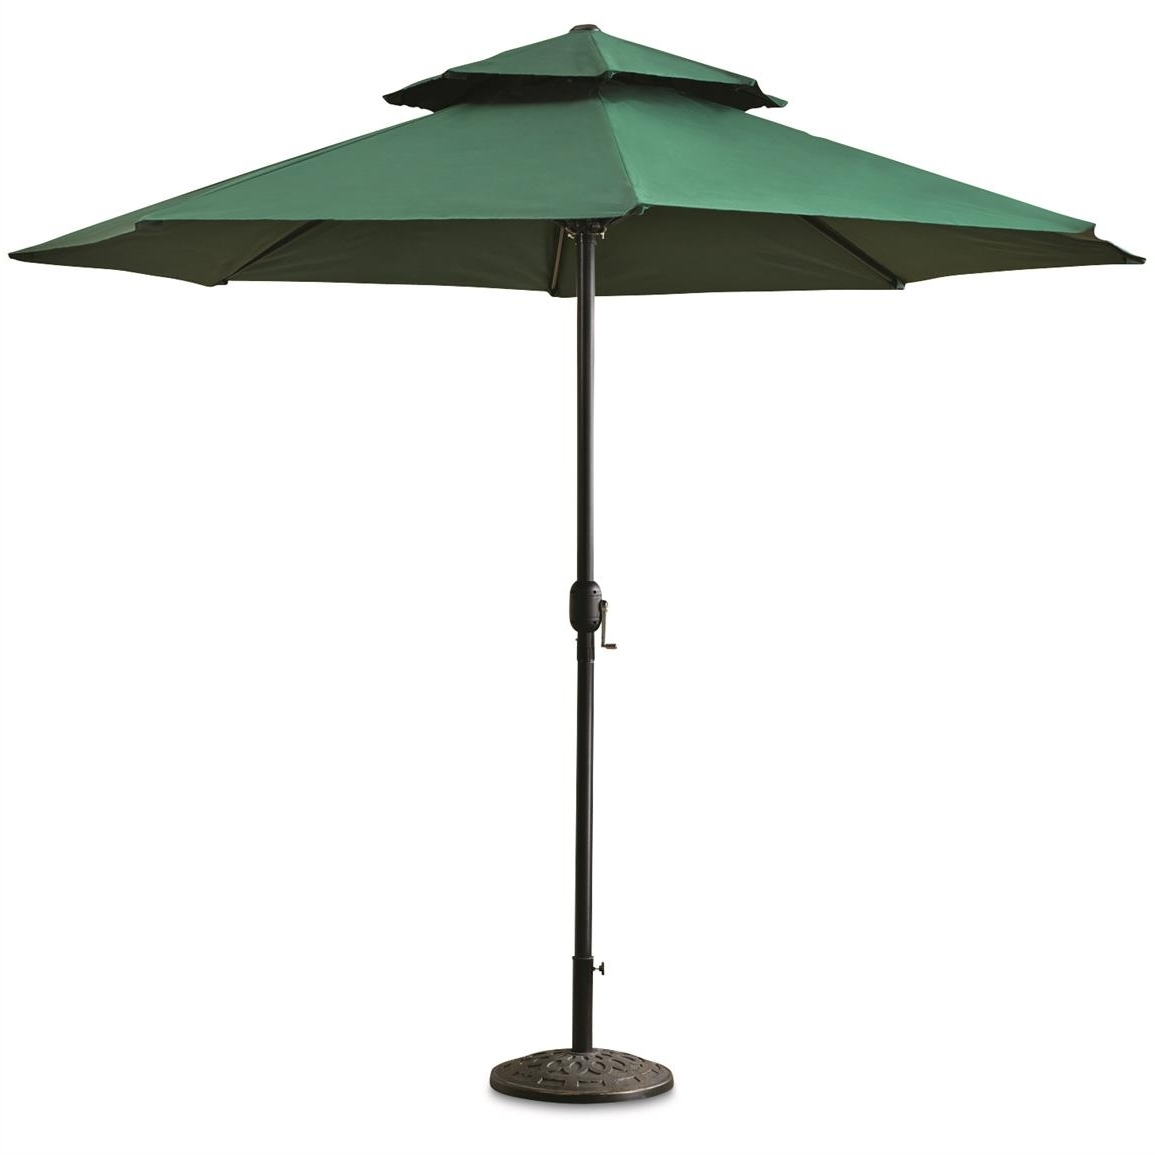 Castlecreek 10' Double Layer Patio Umbrella – 678520, Patio Pertaining To Fashionable Green Patio Umbrellas (View 5 of 20)